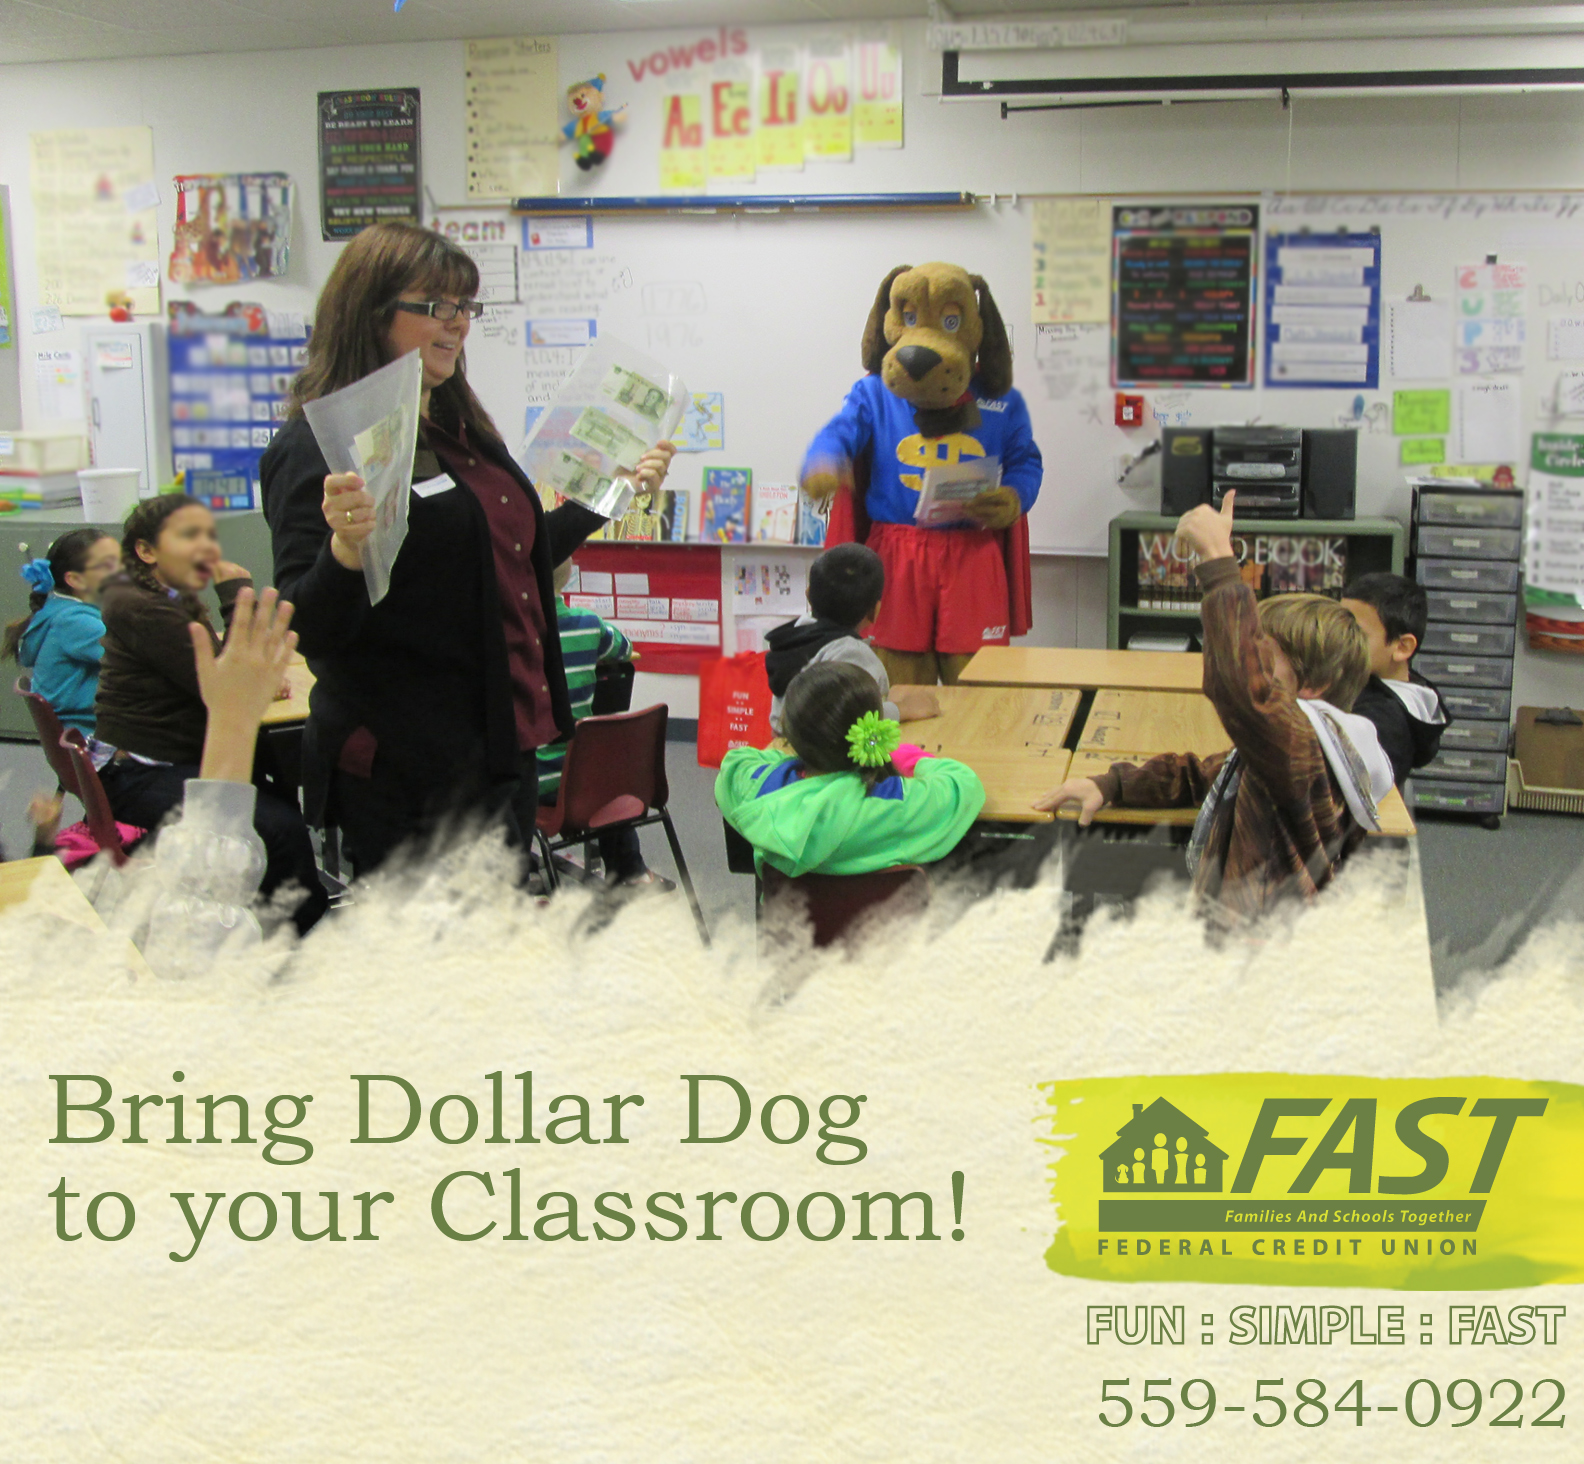 At FAST, we believe our members are our friends. Our name - Families and Schools Together -  says it all. We work hard to help you learn fun and simple lessons about money that will help you for a lifetime! That's why Dollar Dog goes to classrooms to teach kids about money. He shows them money from different countries, counterfeit money and much more! Contact us to bring Dollar Dog to your classroom or event.